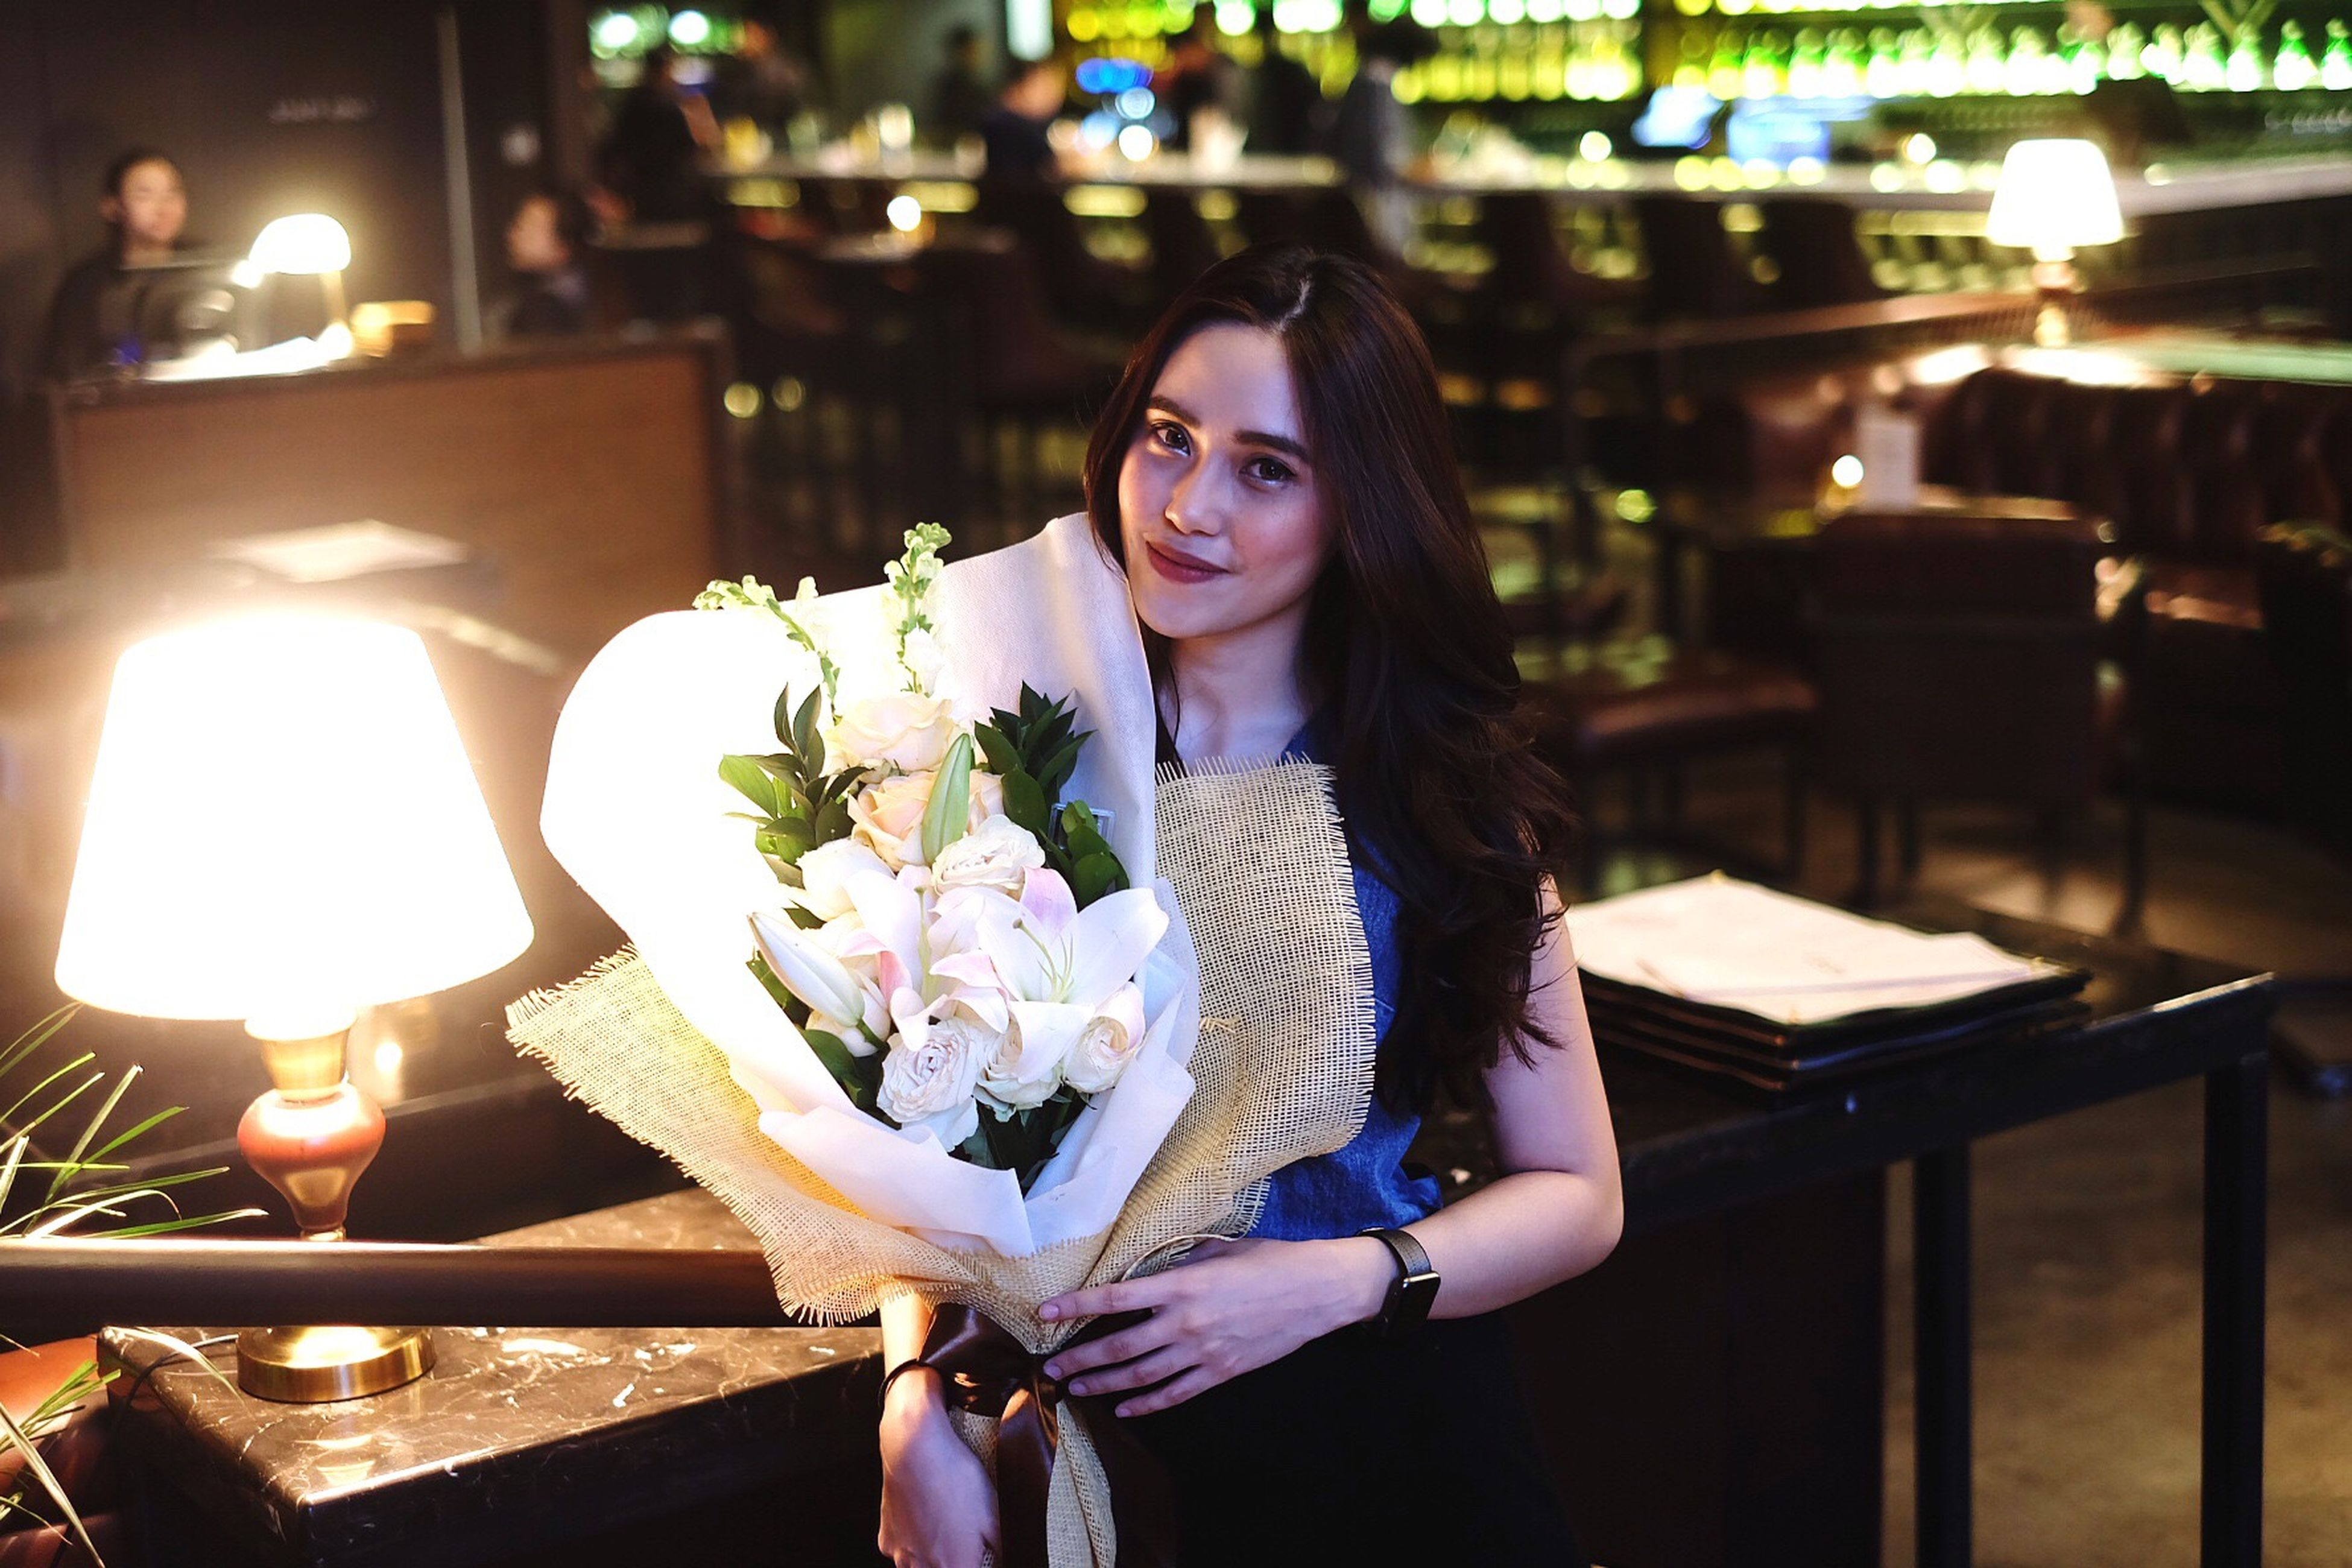 young adult, one person, table, restaurant, young women, portrait, night, front view, real people, flower, looking at camera, beautiful woman, smiling, happiness, illuminated, lifestyles, outdoors, nature, people